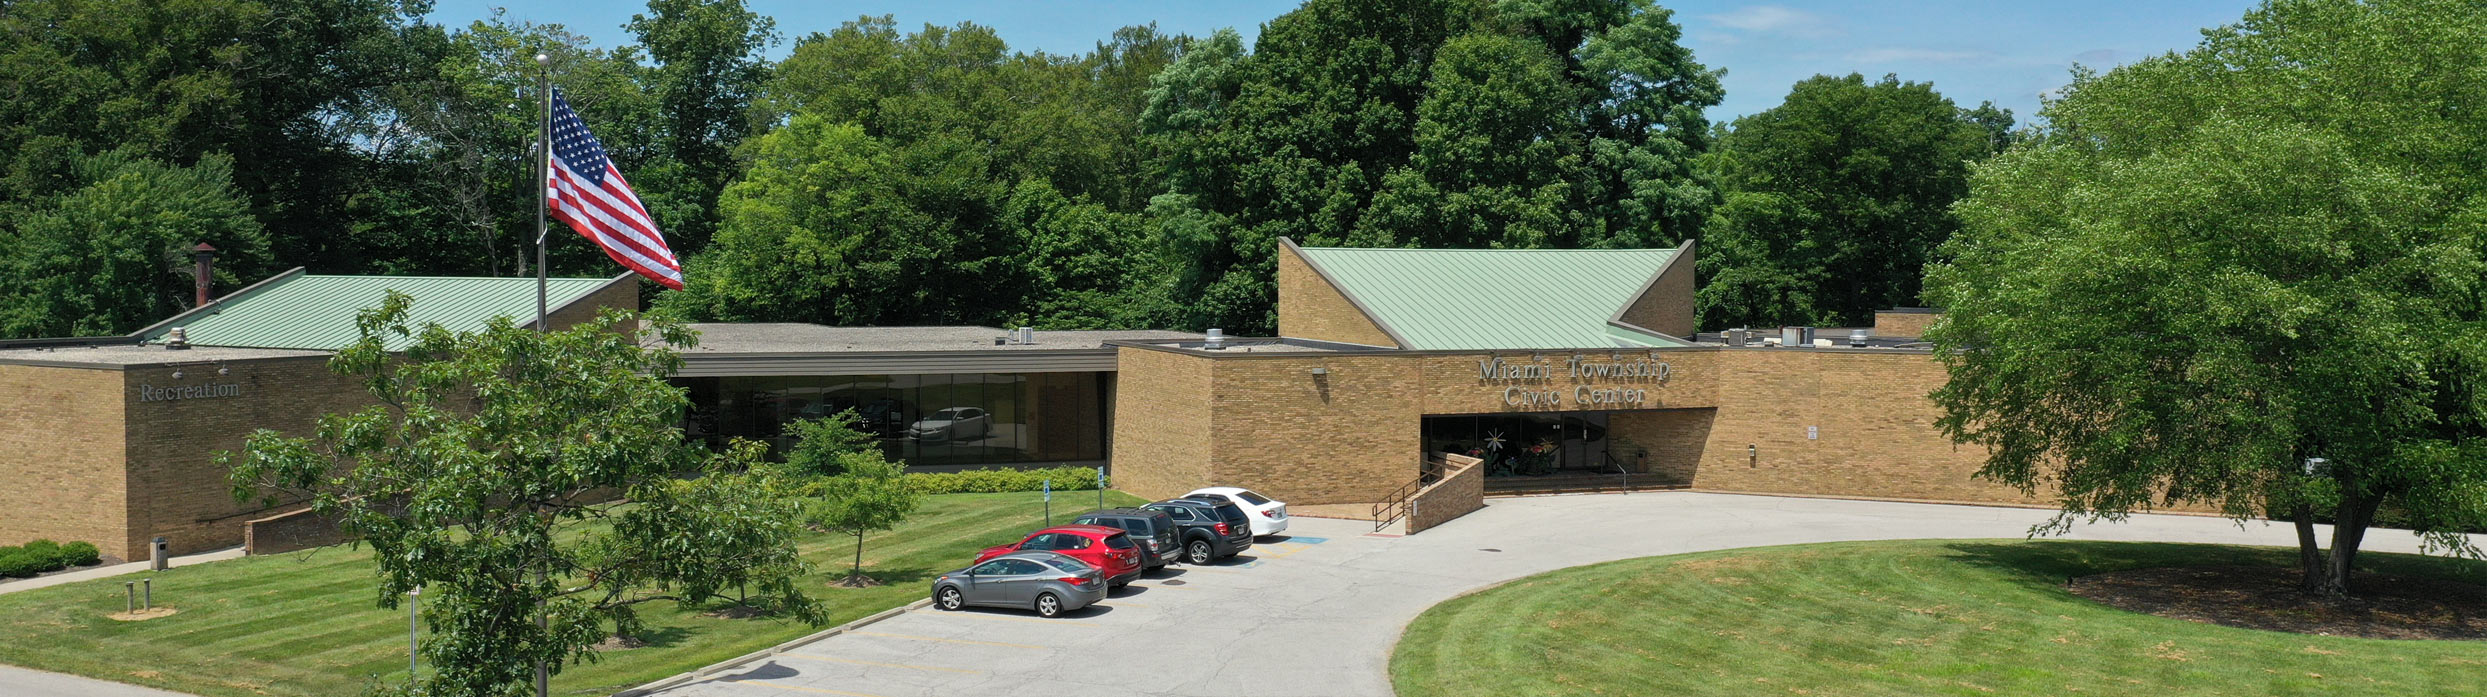 Miami Township Civic Center